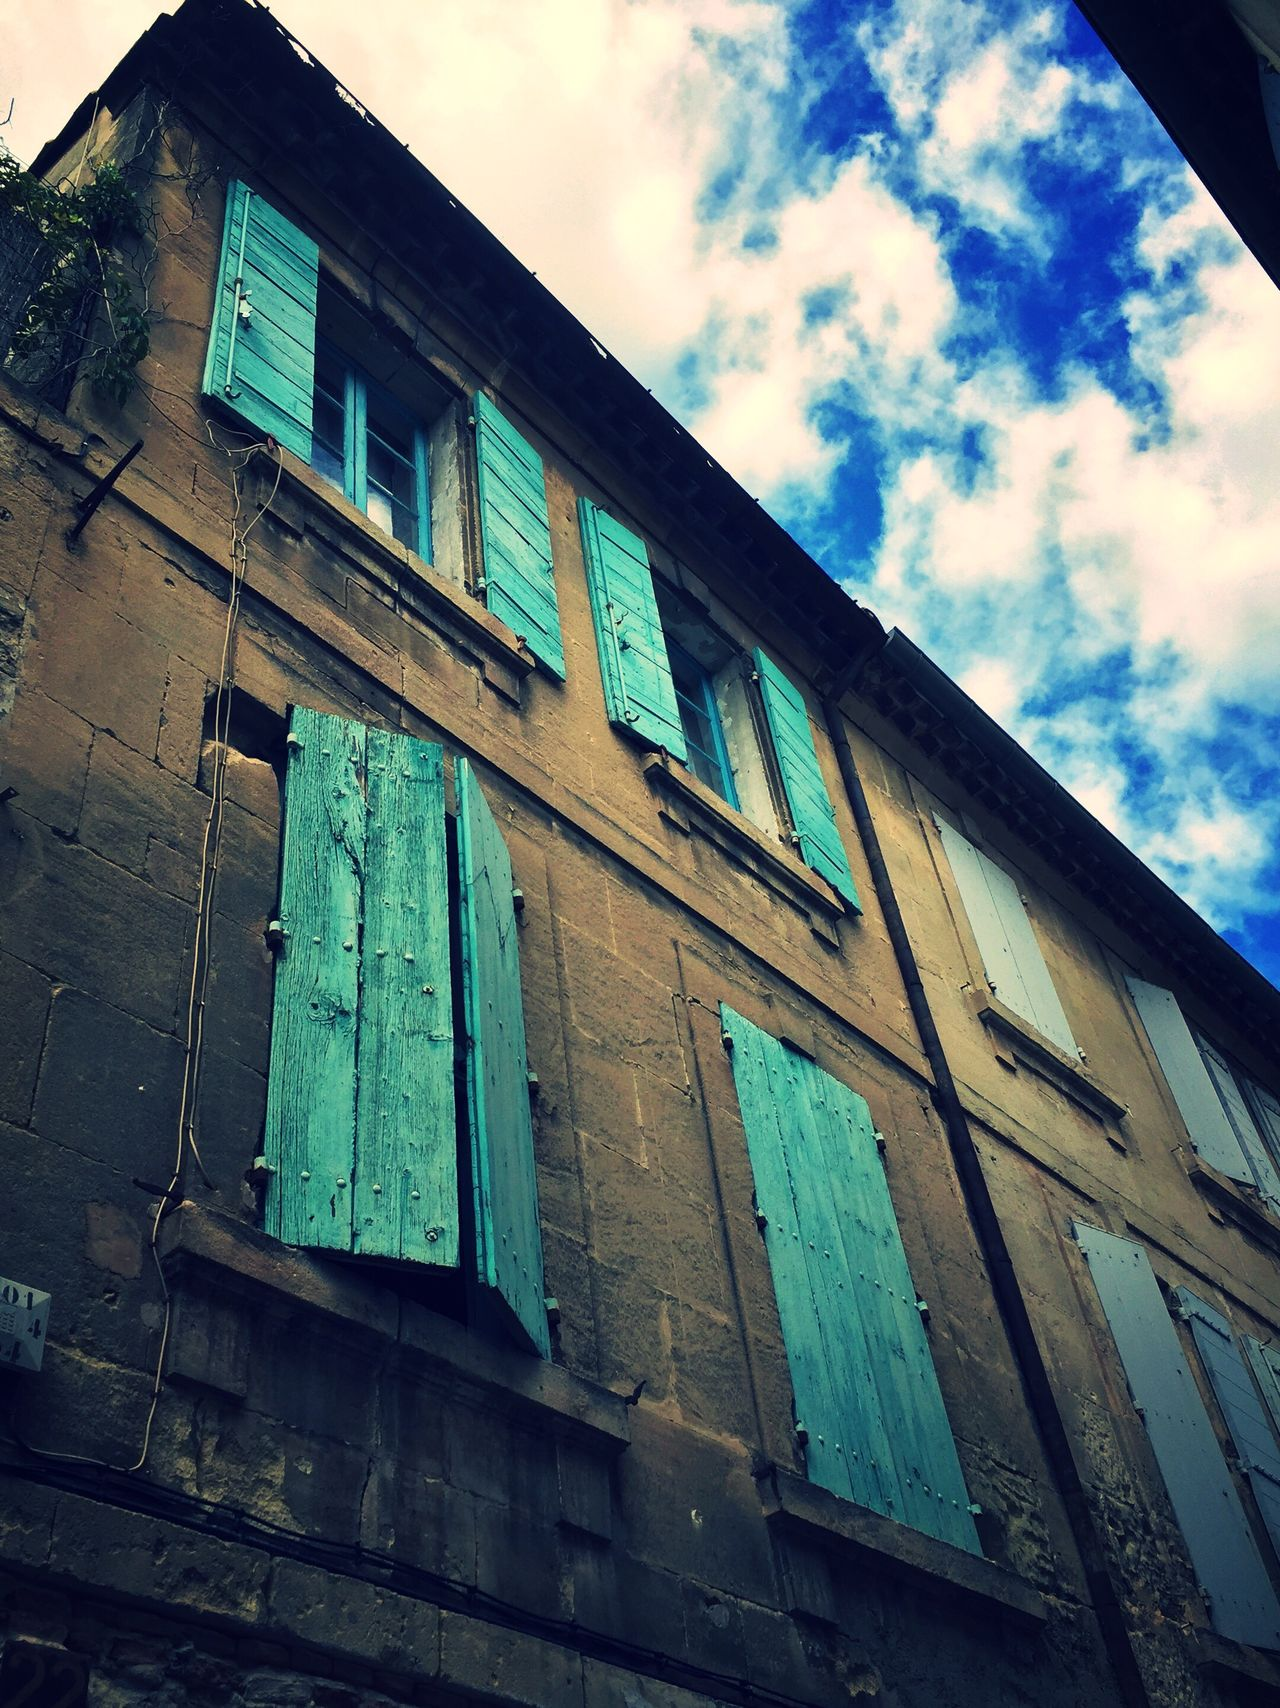 Day Low Angle View Building Exterior Architecture Window Sky No People Cloud - Sky Built Structure Outdoors EyeEmNewHere Arles Provence France